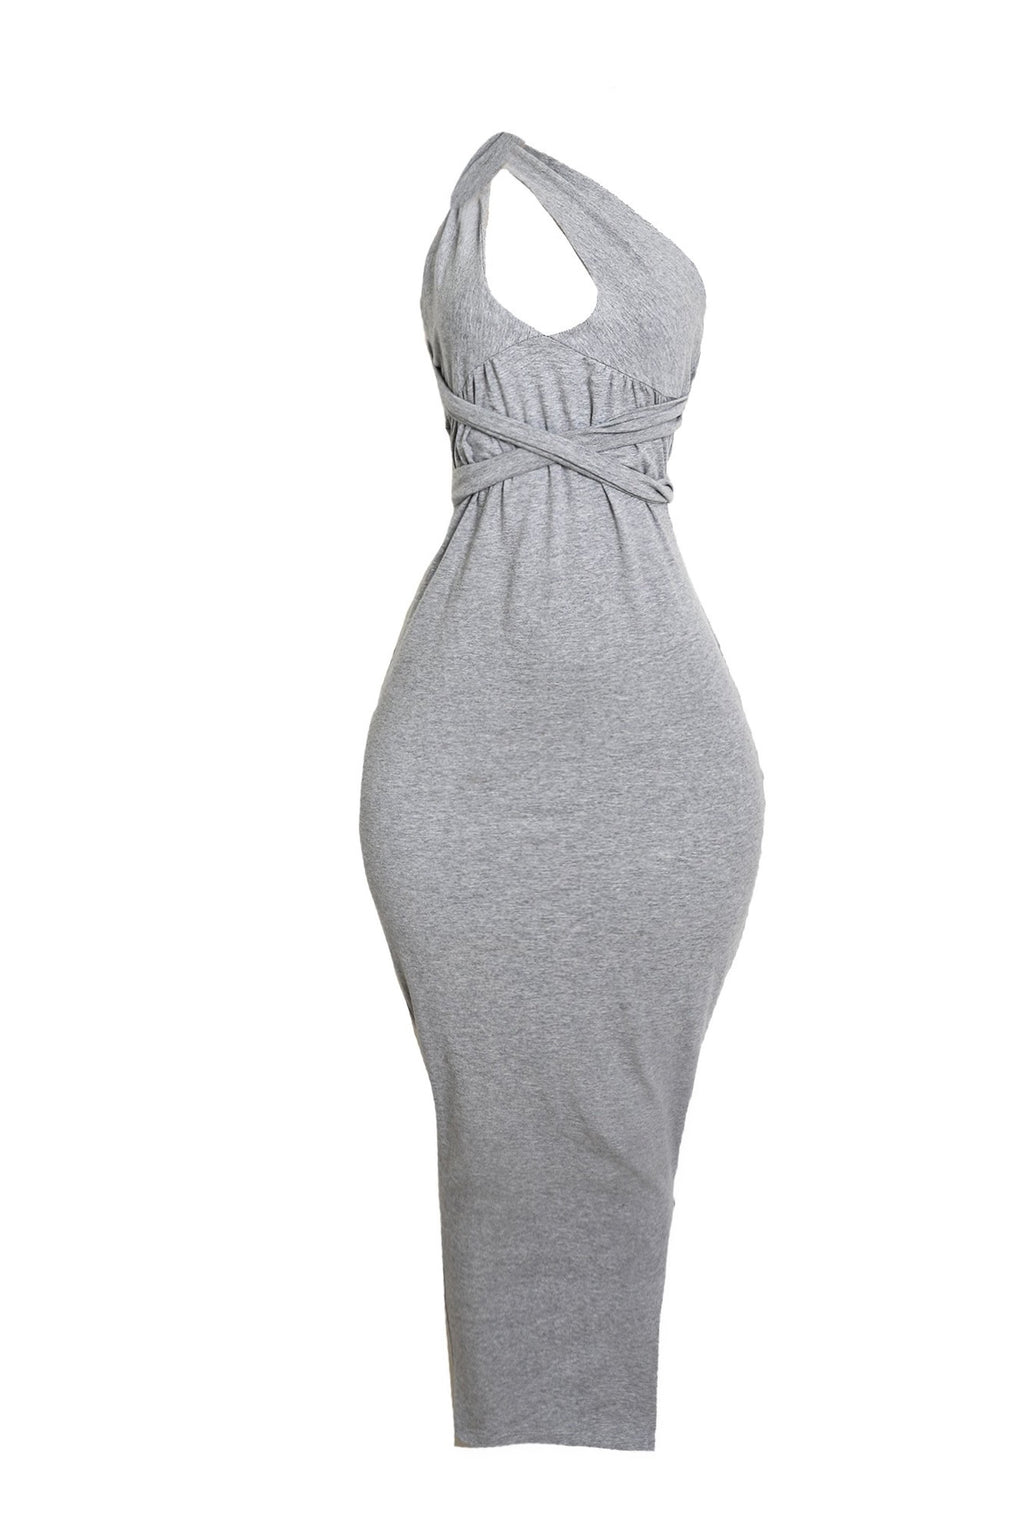 Mock Neck Seamless Maxi in Black - Babes And Felines | Specializing in Fashionable Staple Pieces for Every Shape and Size